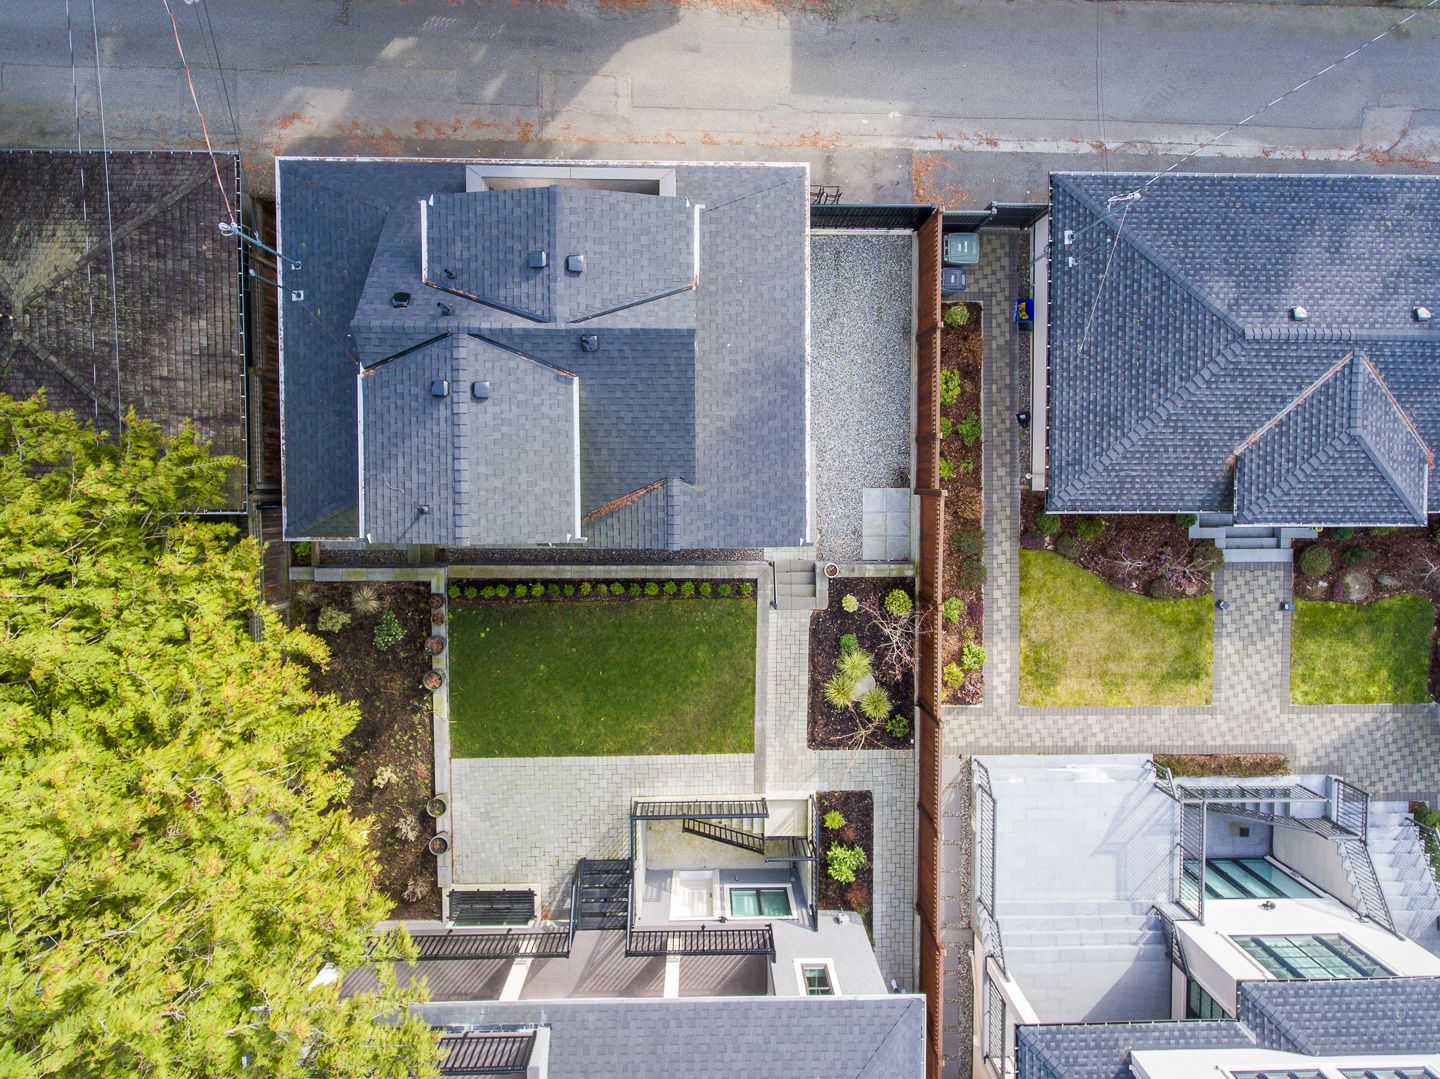 Photo 51: Photos: 1744 WEST 61ST AVE in VANCOUVER: South Granville House for sale (Vancouver West)  : MLS®# R2546980